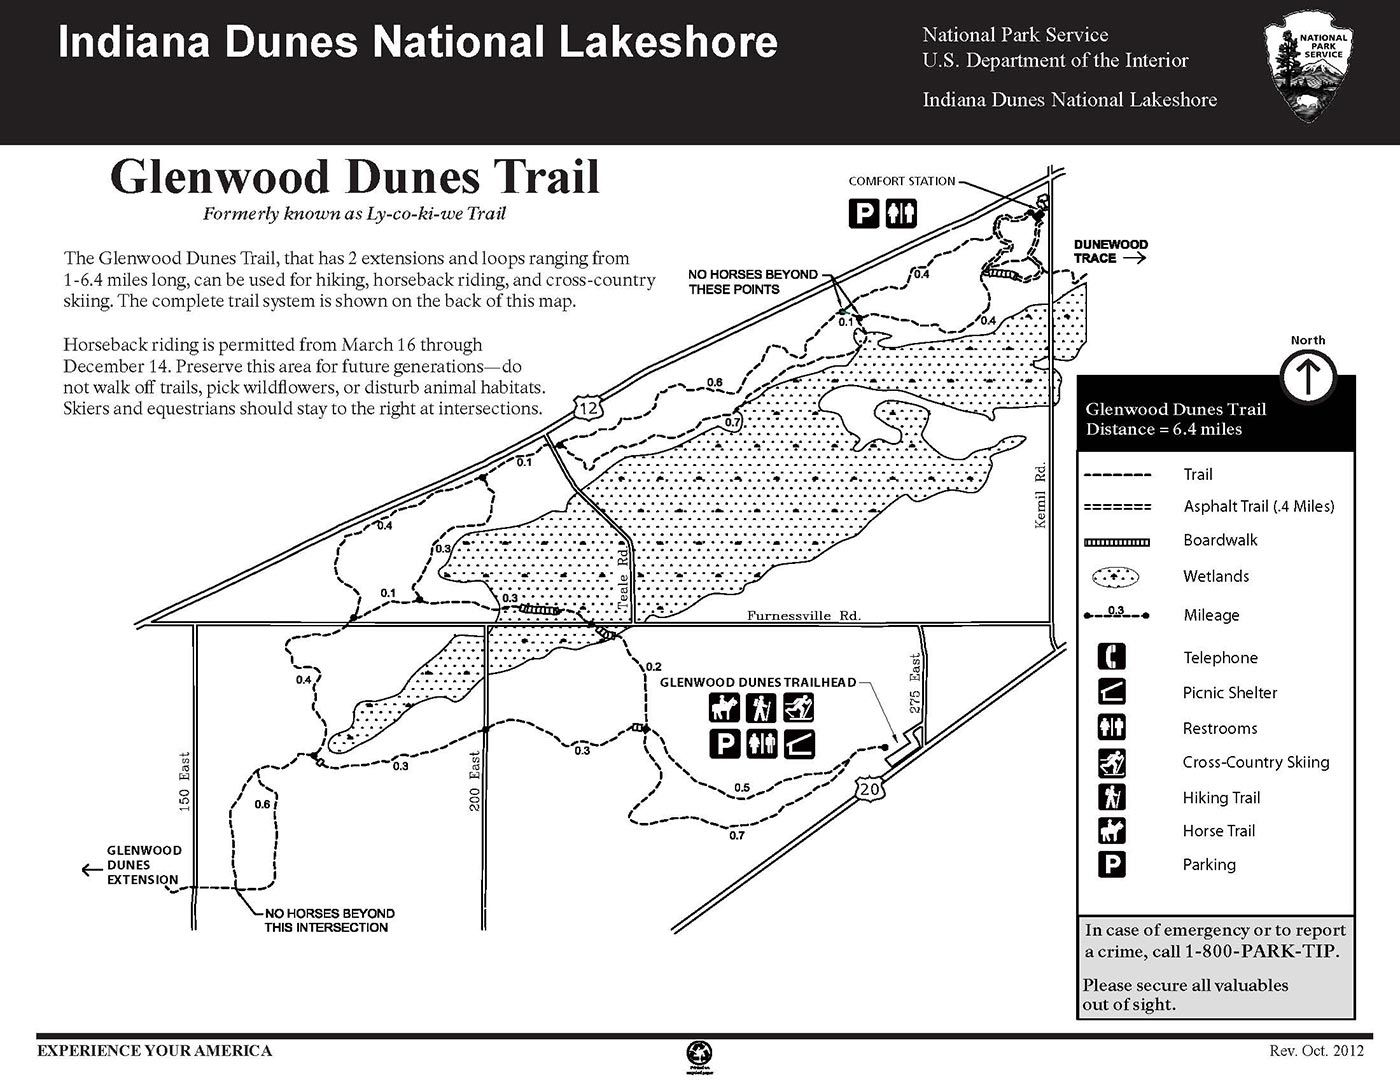 Glenwood Dunes Trail | Honeymoon | Indiana dunes, Park ... on anza-borrego desert state park map, pike state forest map, indiana mounds state park map, jockey's ridge state park map, map of michigan road map, patoka lake state park map, indiana map with state parks, southern indiana state parks map, valley of fire state park map, nashville indiana state park map, mesa verde state park map, falls of the ohio state park map, chain o'lakes state park map, indiana shades state park campground, michigan shore to shore trail map, van damme state park map, world's end state park map, joshua tree state park map, brookville indiana state park map, ouabache state park map,